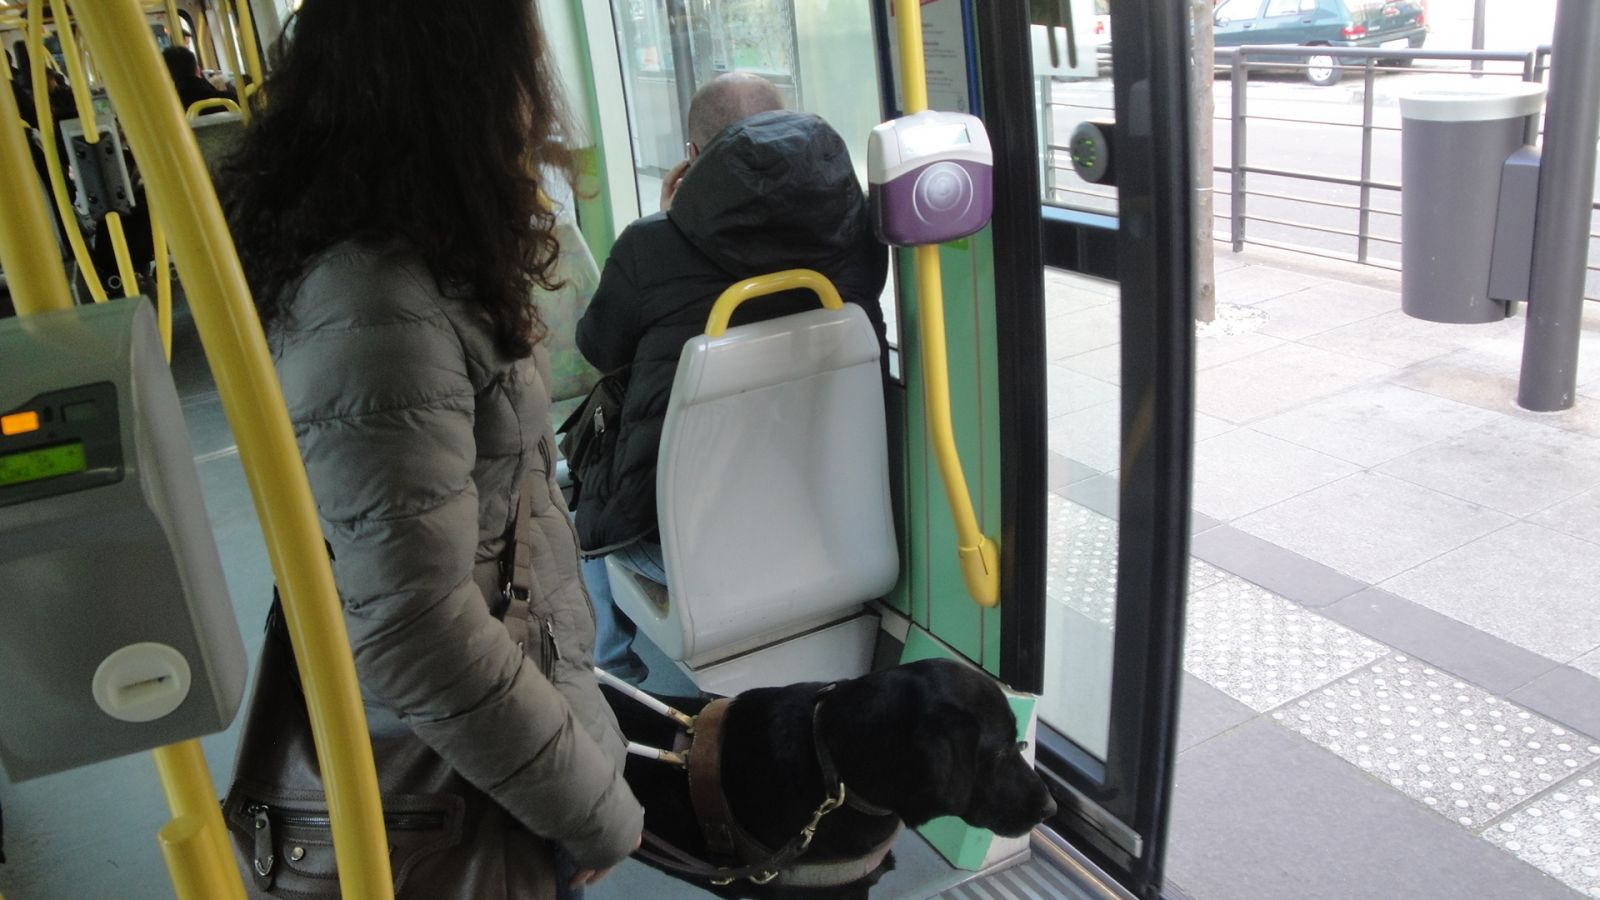 chien-guide-paris-journee-perfectionnement-tramway-04.jpg